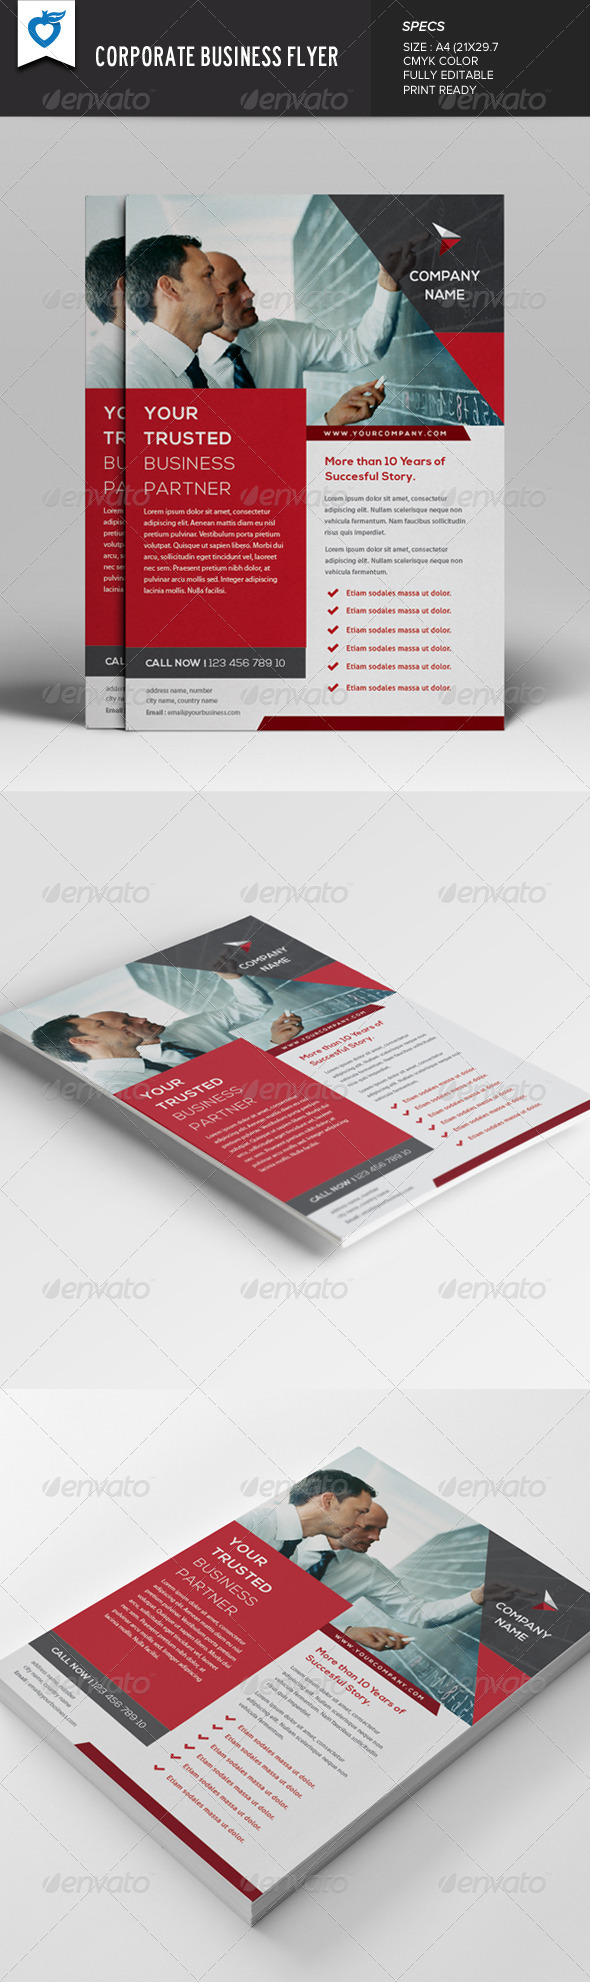 GraphicRiver Corporate Business Flyer v4 7816553